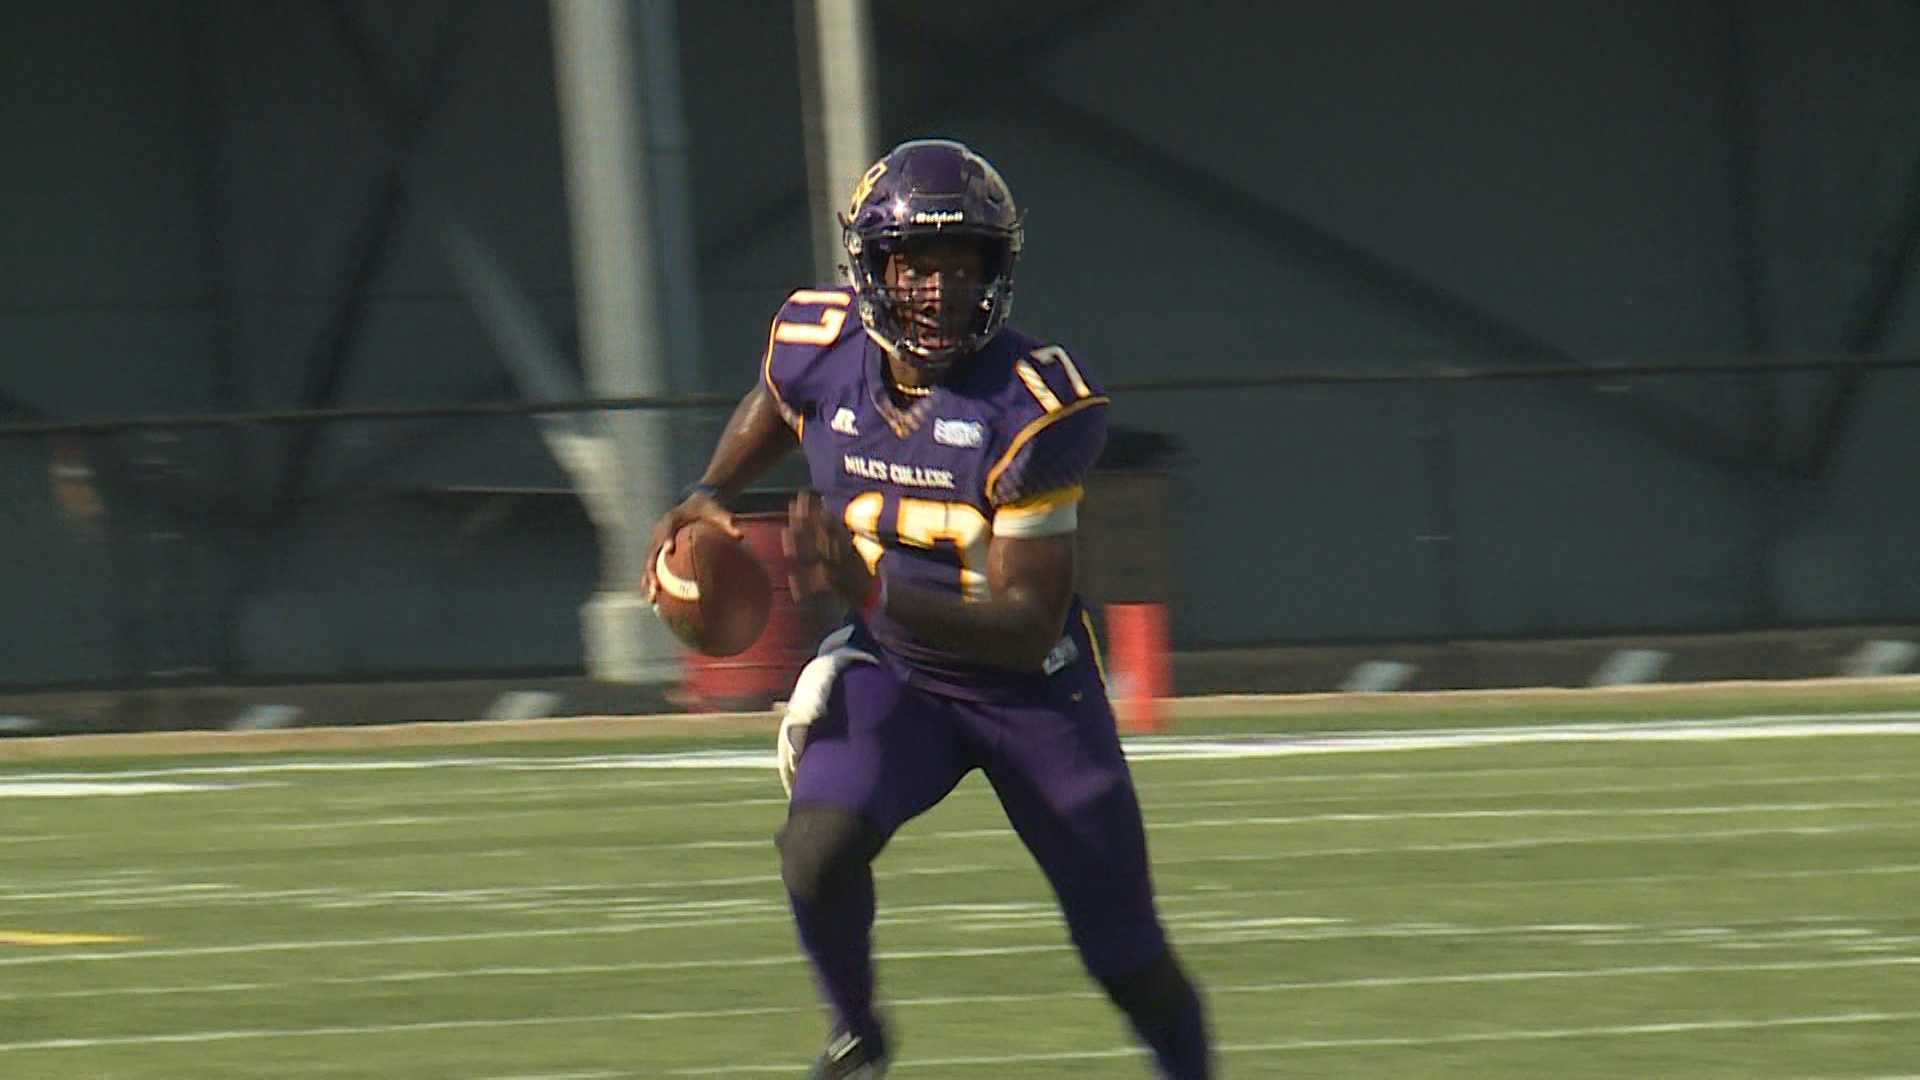 Miles tops Fort Valley State 34-21 in Labor Day Golden Classic.